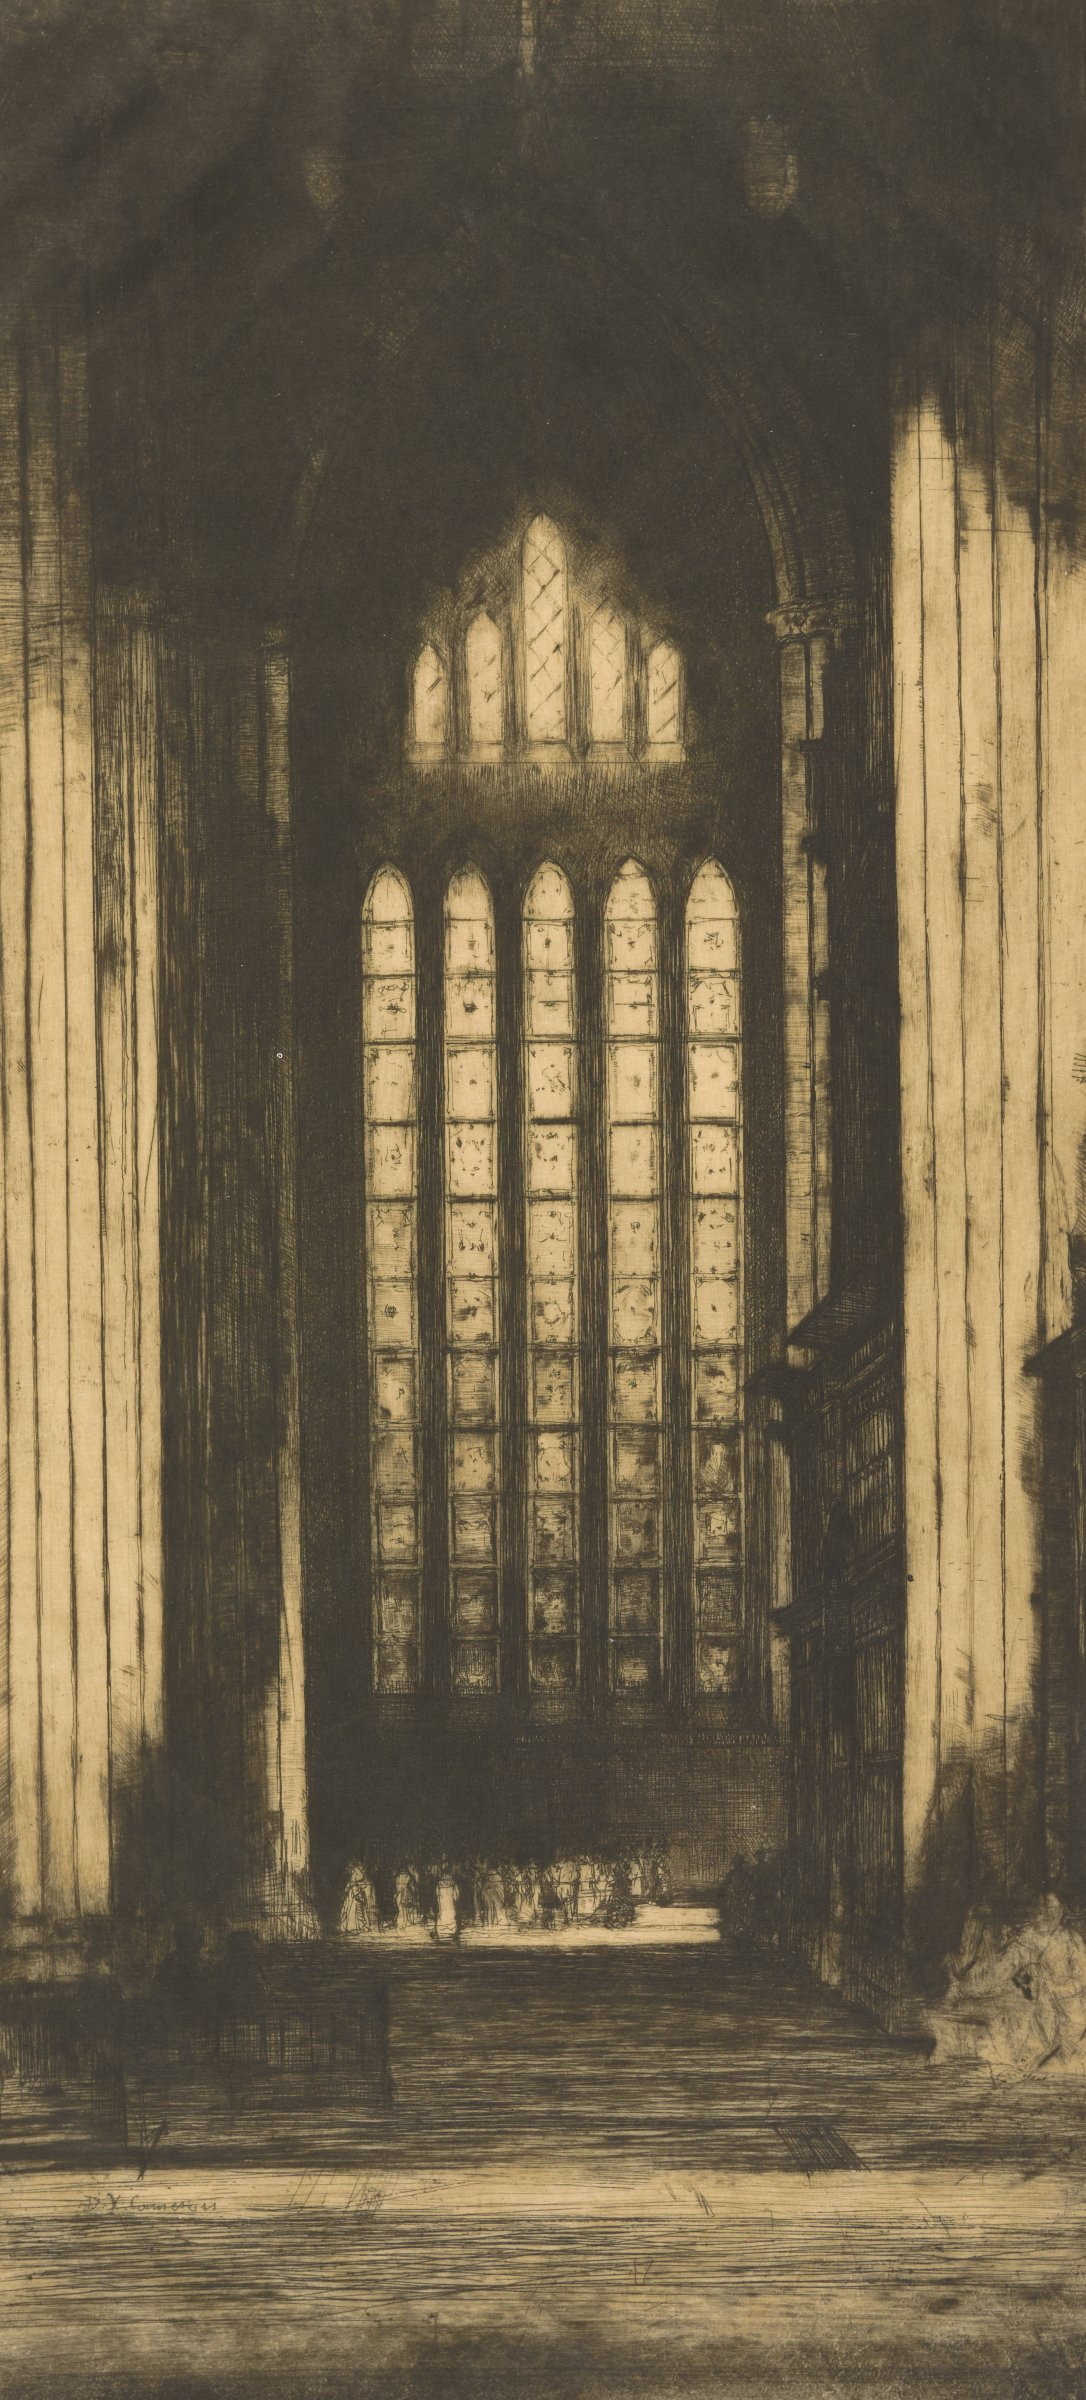 View of a cathedral window in York Minster Cathedral. People gather underneath the window.